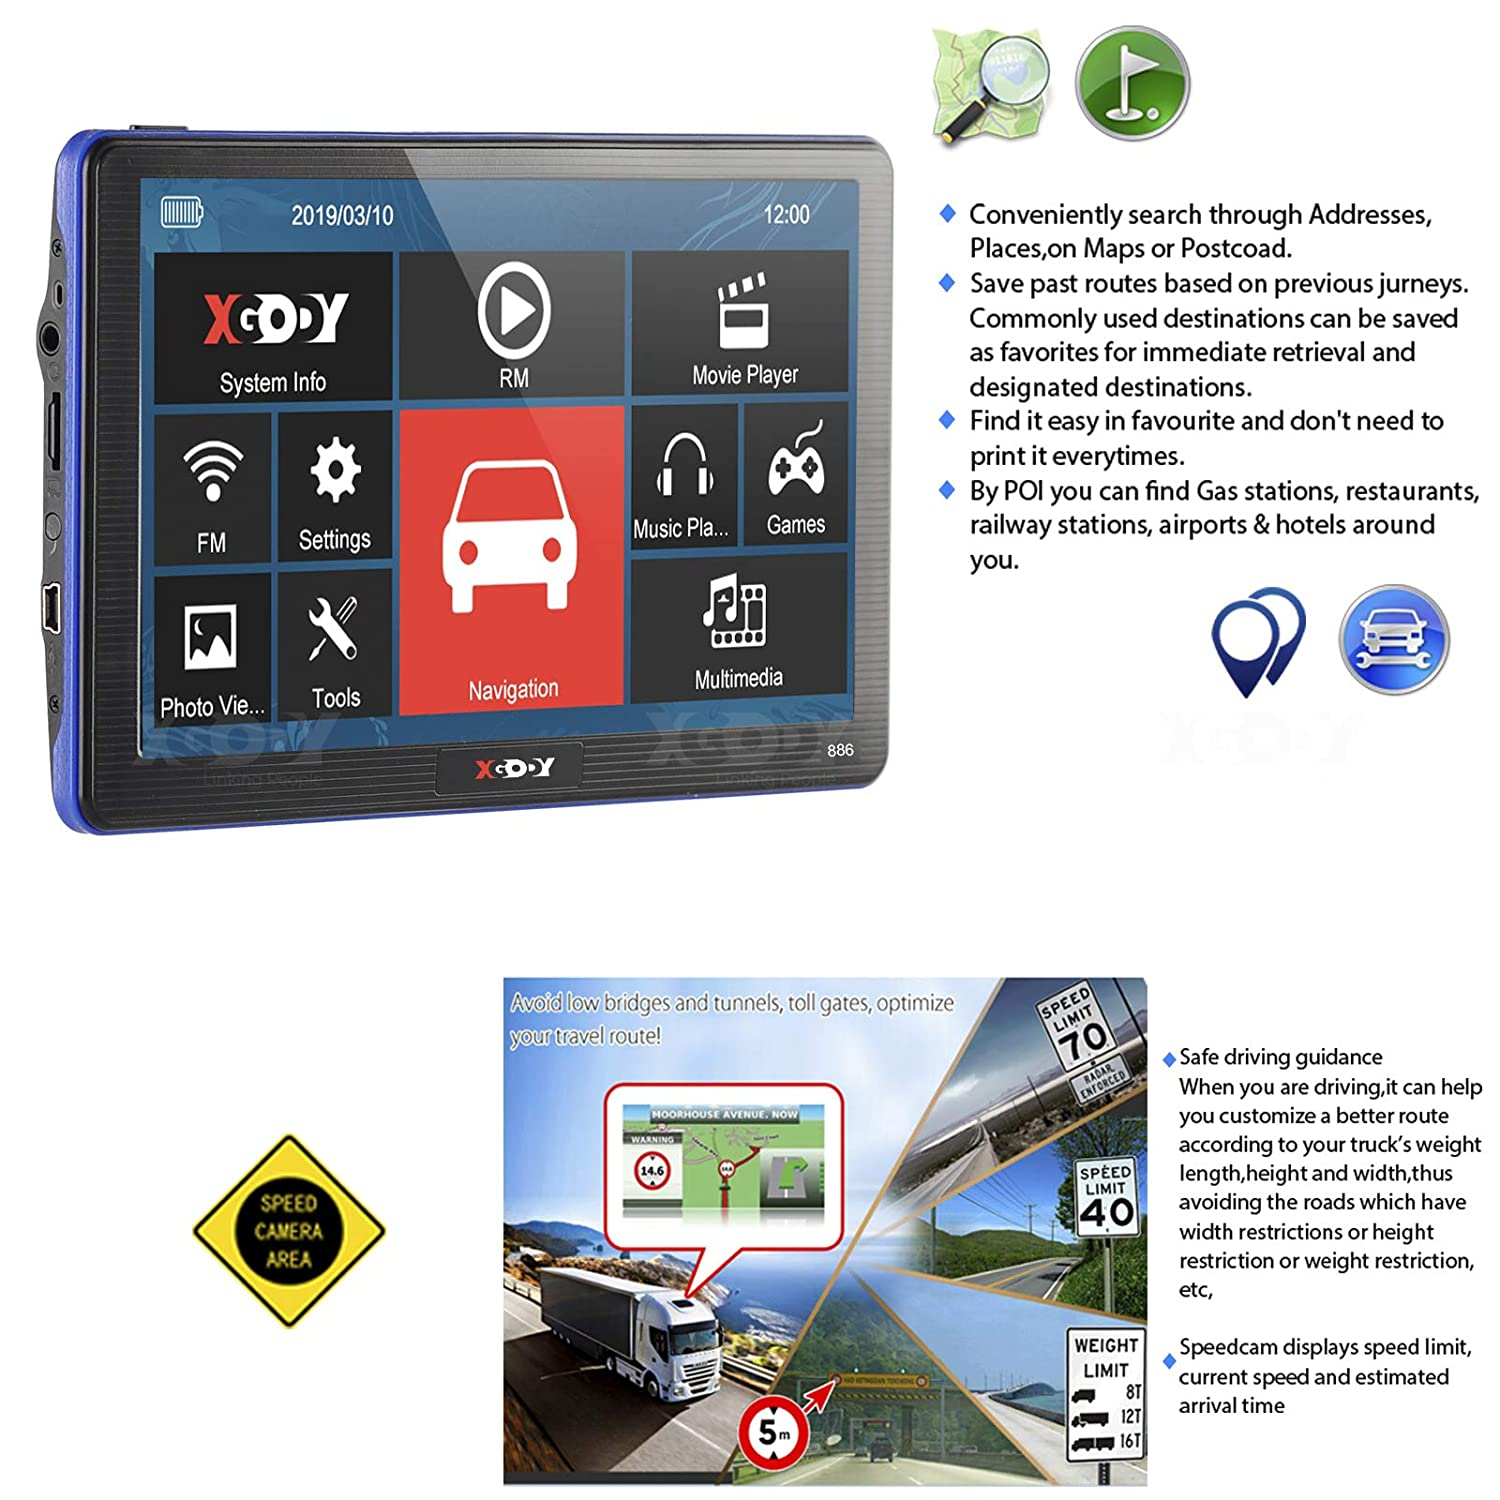 "XGODY Car Truck Sat Nav GPS Navigation for Car 8GB ROM 7/"" Capacitive Touch Screen Lorry Satellite Navigator Displays Pre-installed UK and EU Latest Maps Lifetime Free Updates"